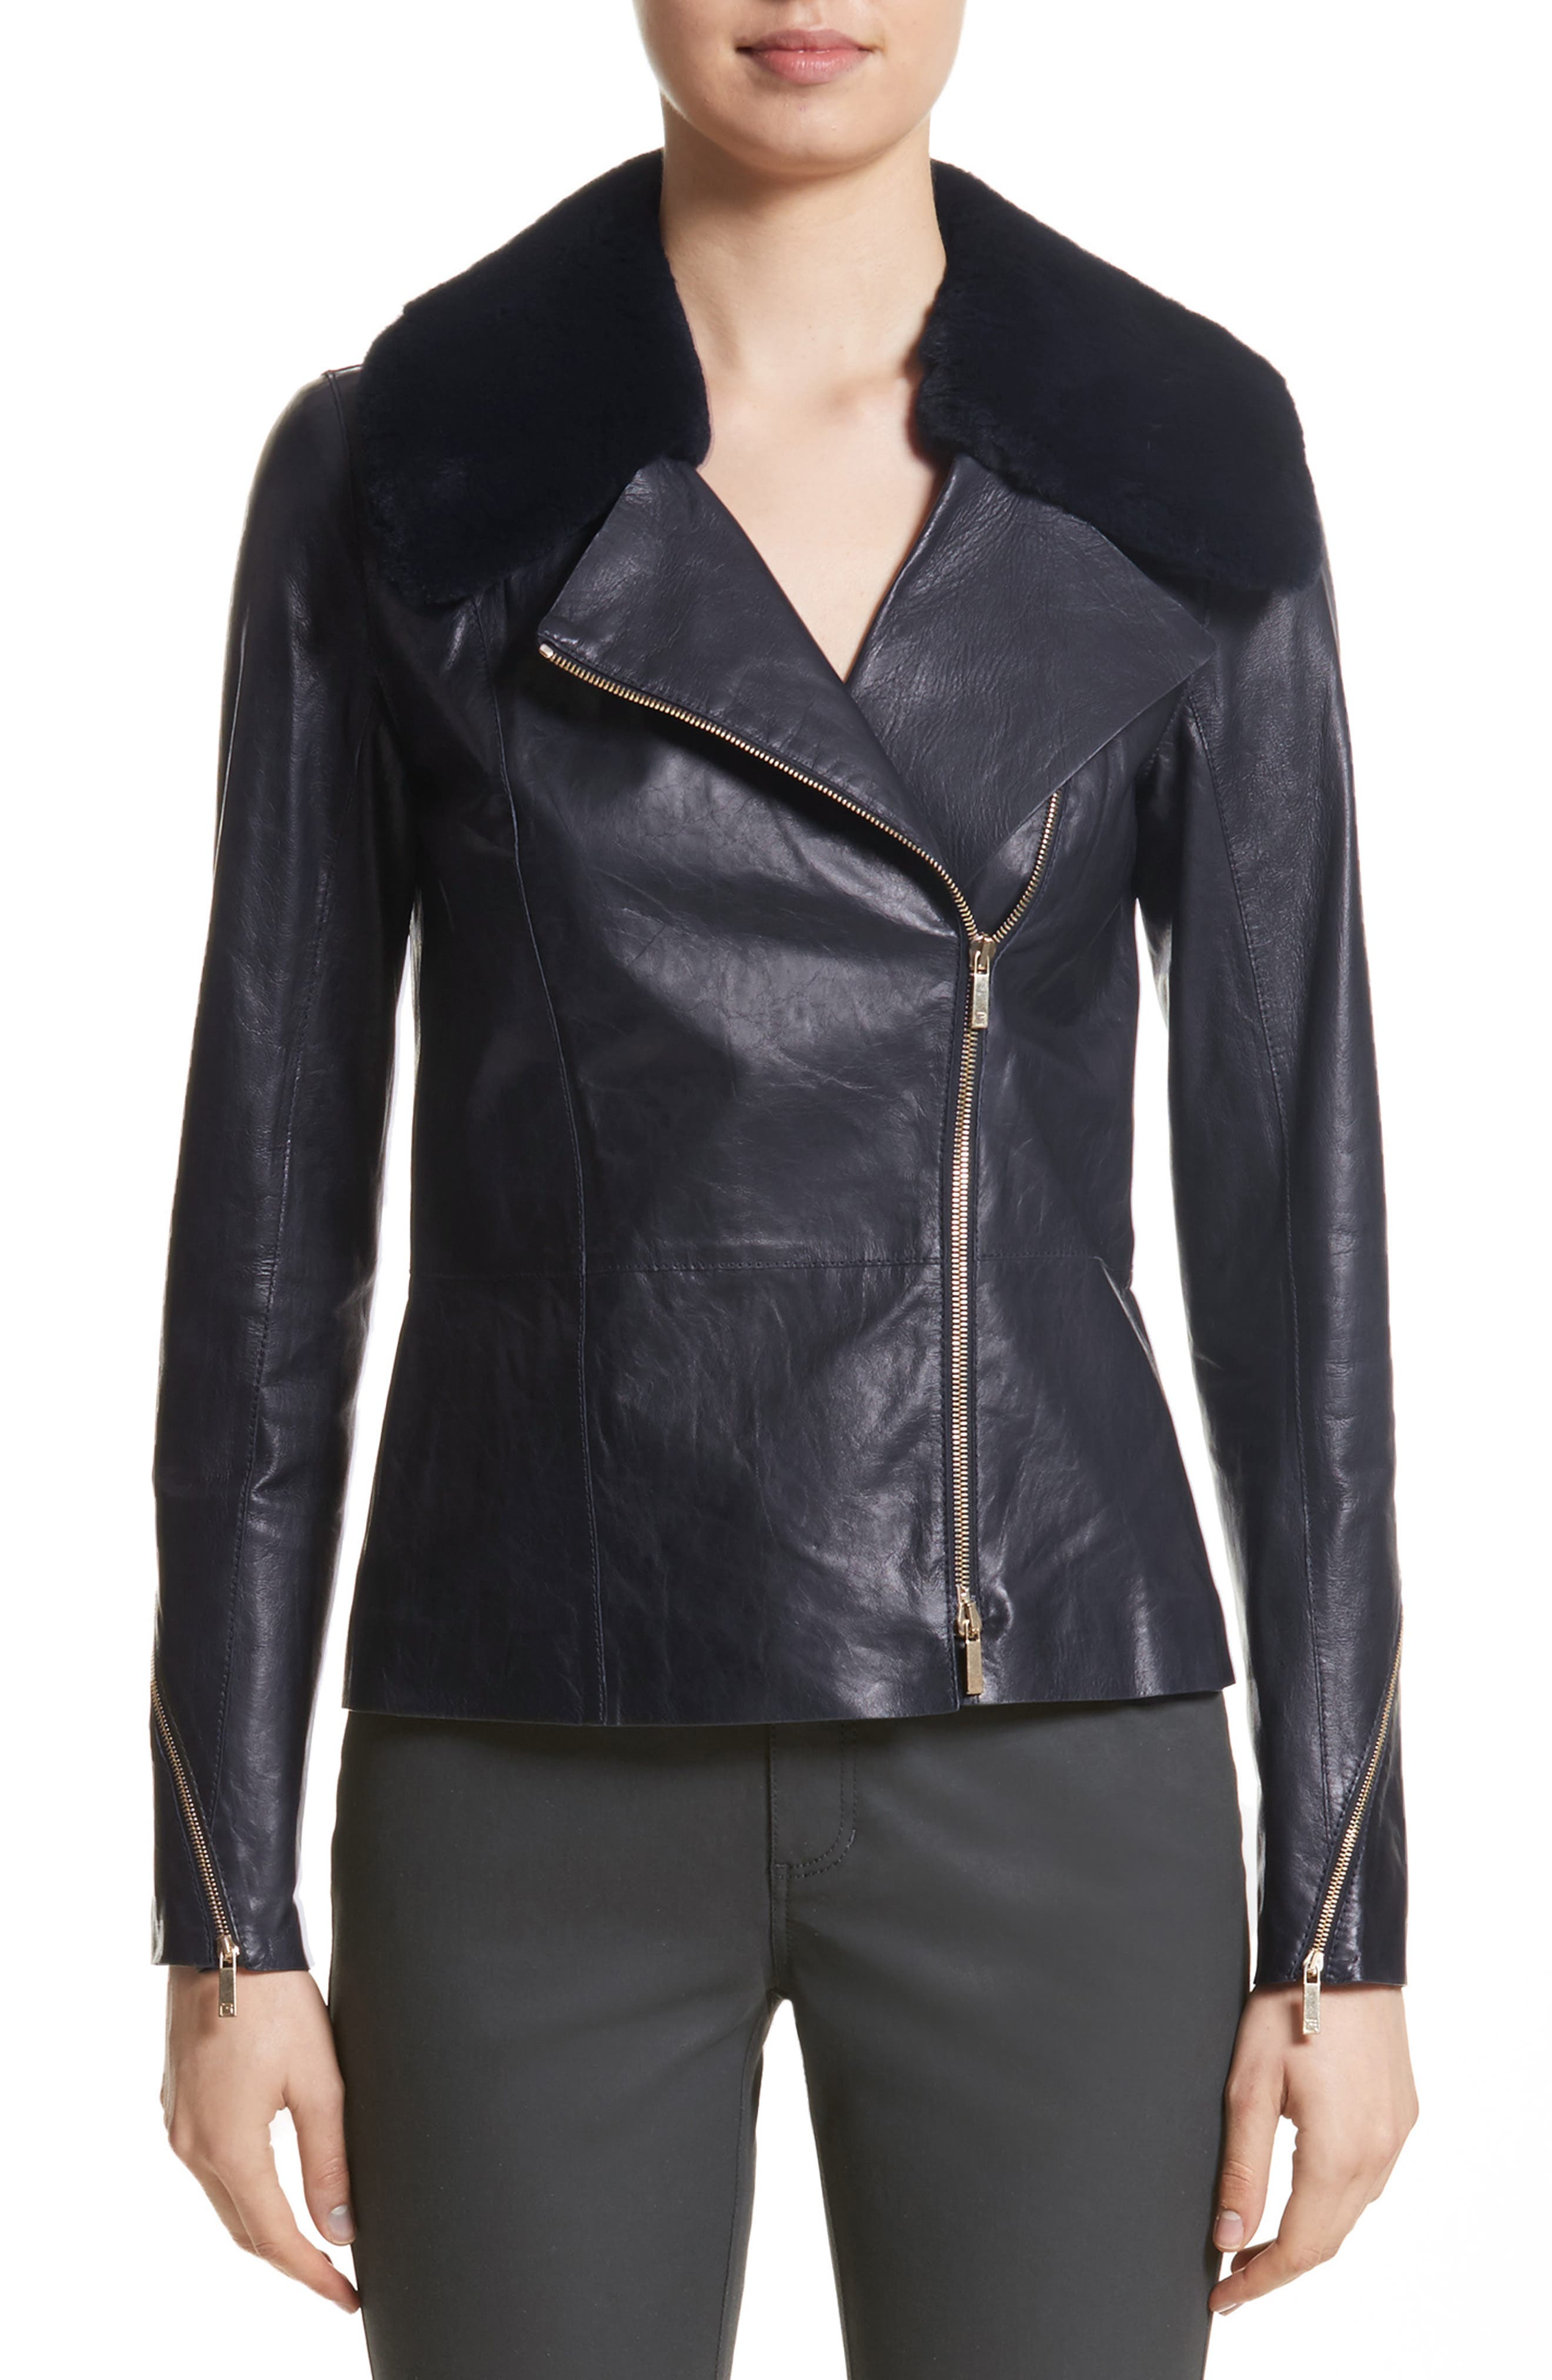 Kimbry Leather Jacket with Removable Genuine Rex Rabbit Fur Collar,                             Main thumbnail 1, color,                             479